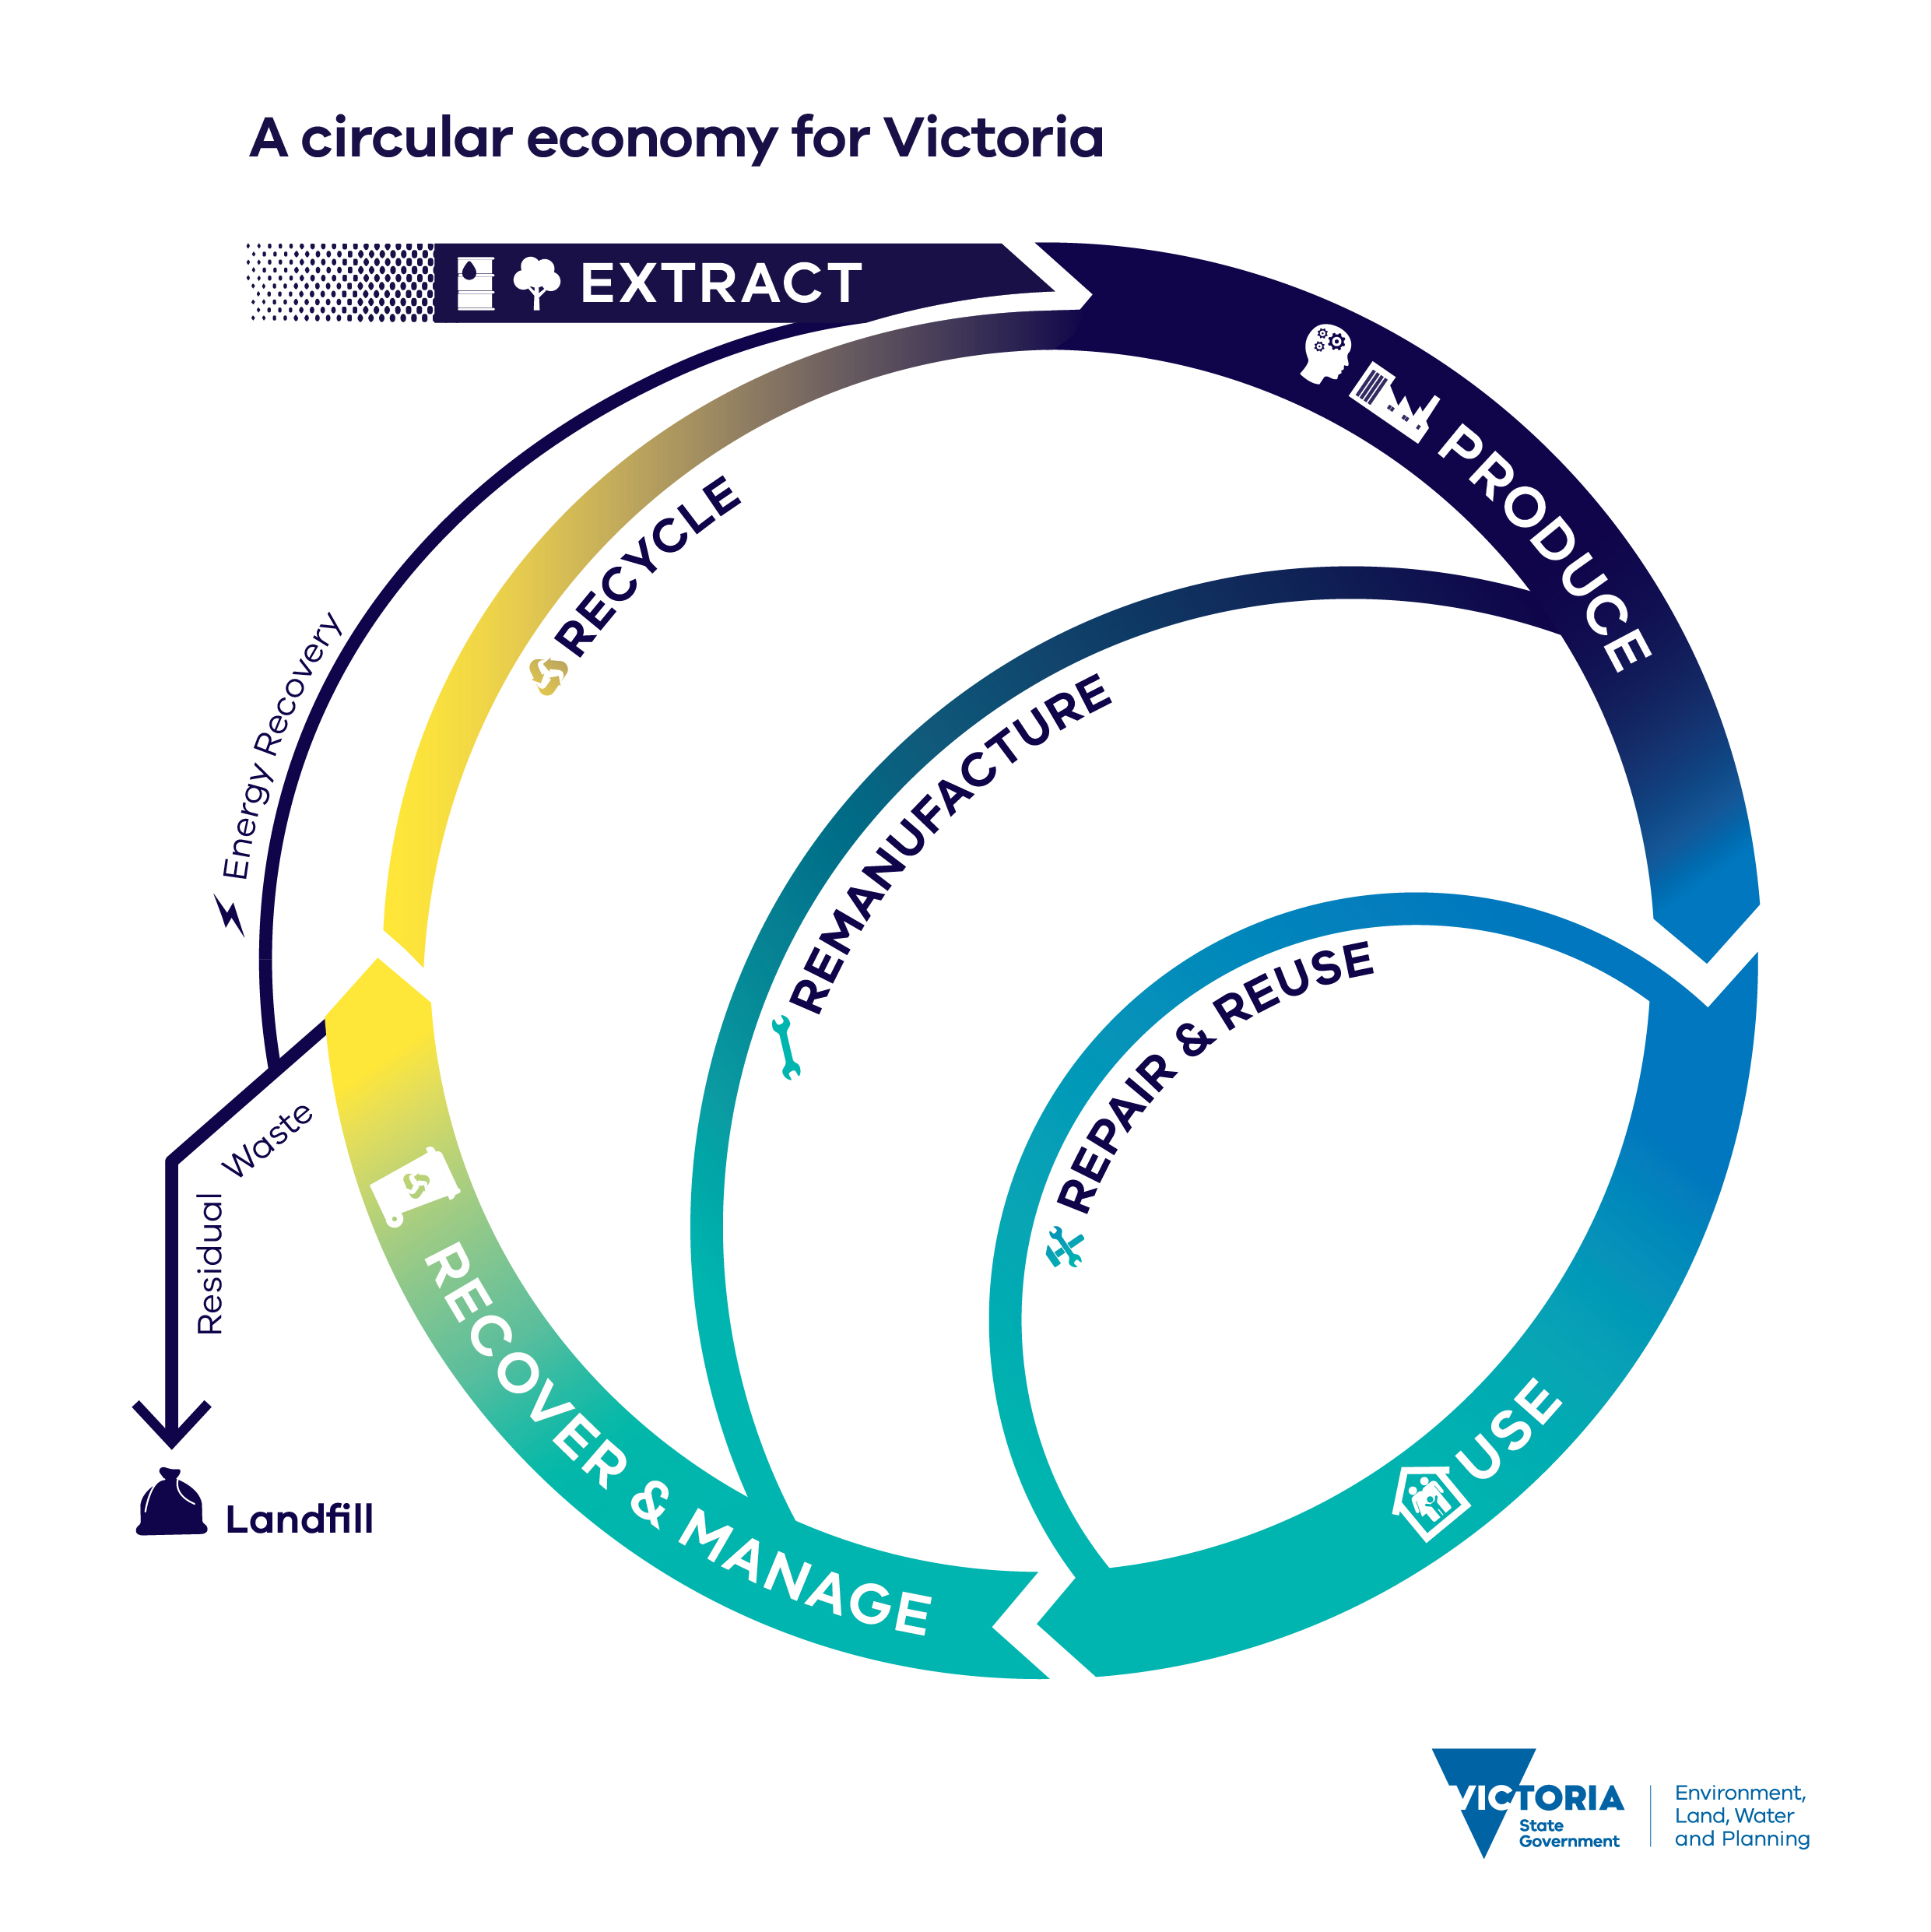 A diagram of a circular economy for Victoria